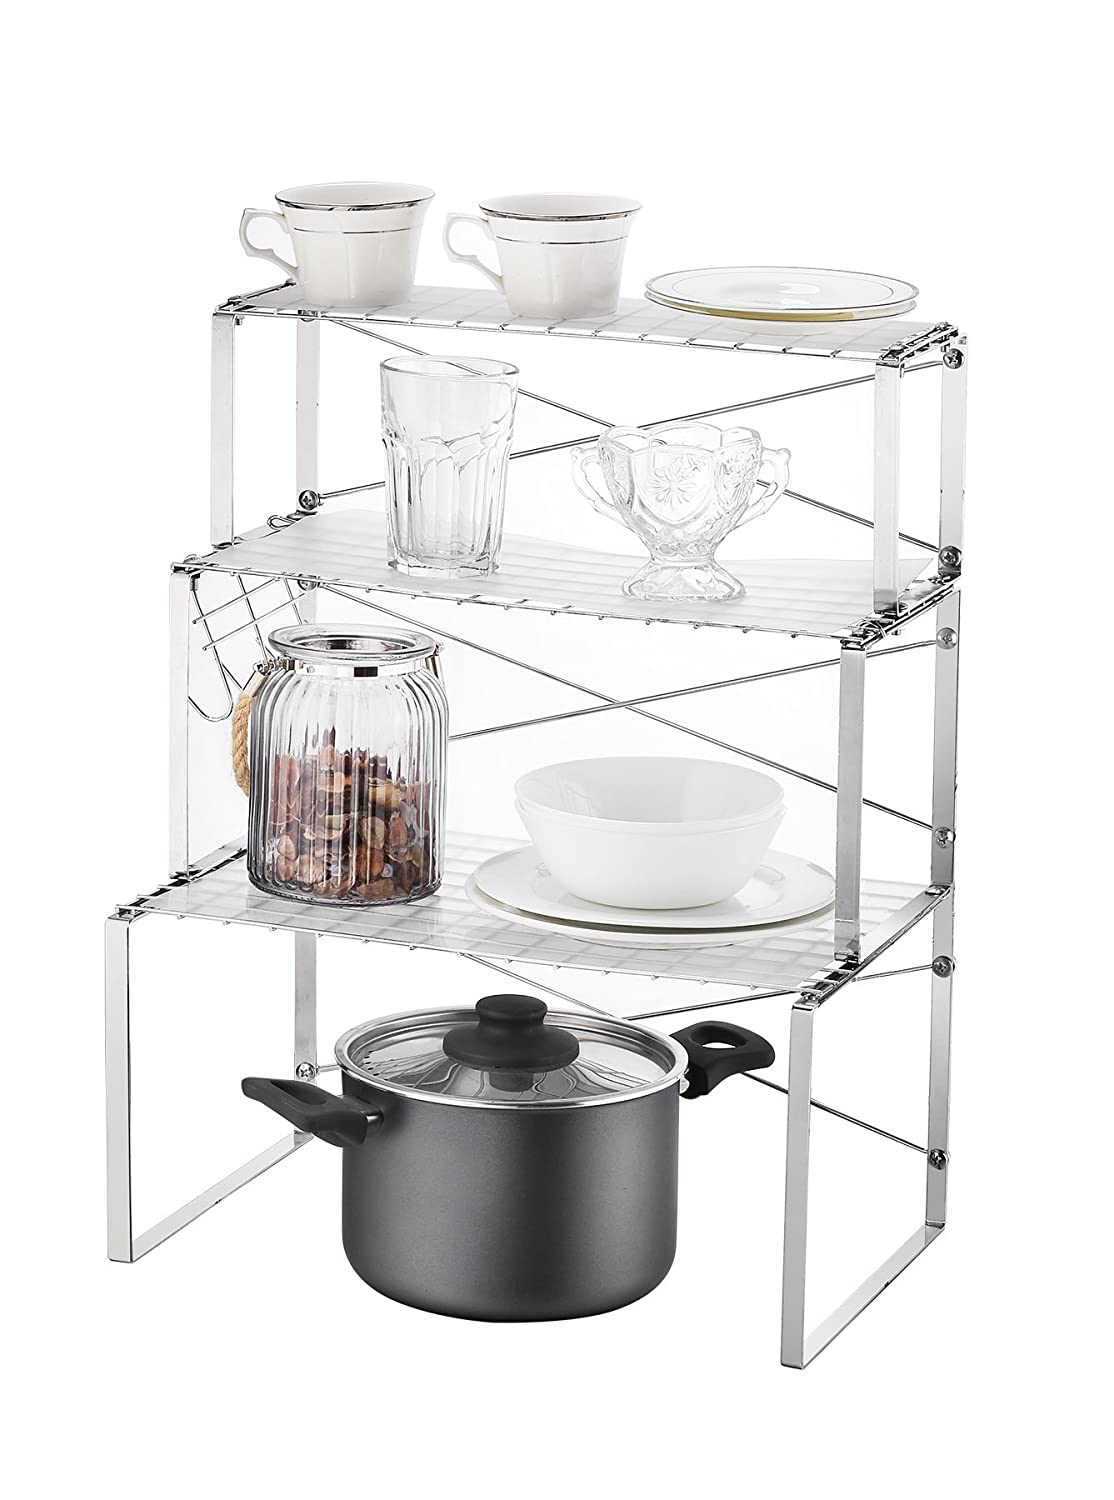 Multi-use 3 Tier Kitchen Cabinet And Counter Shelves Storage Organizer Rack  With Hooks And Shelf Liner (silver)